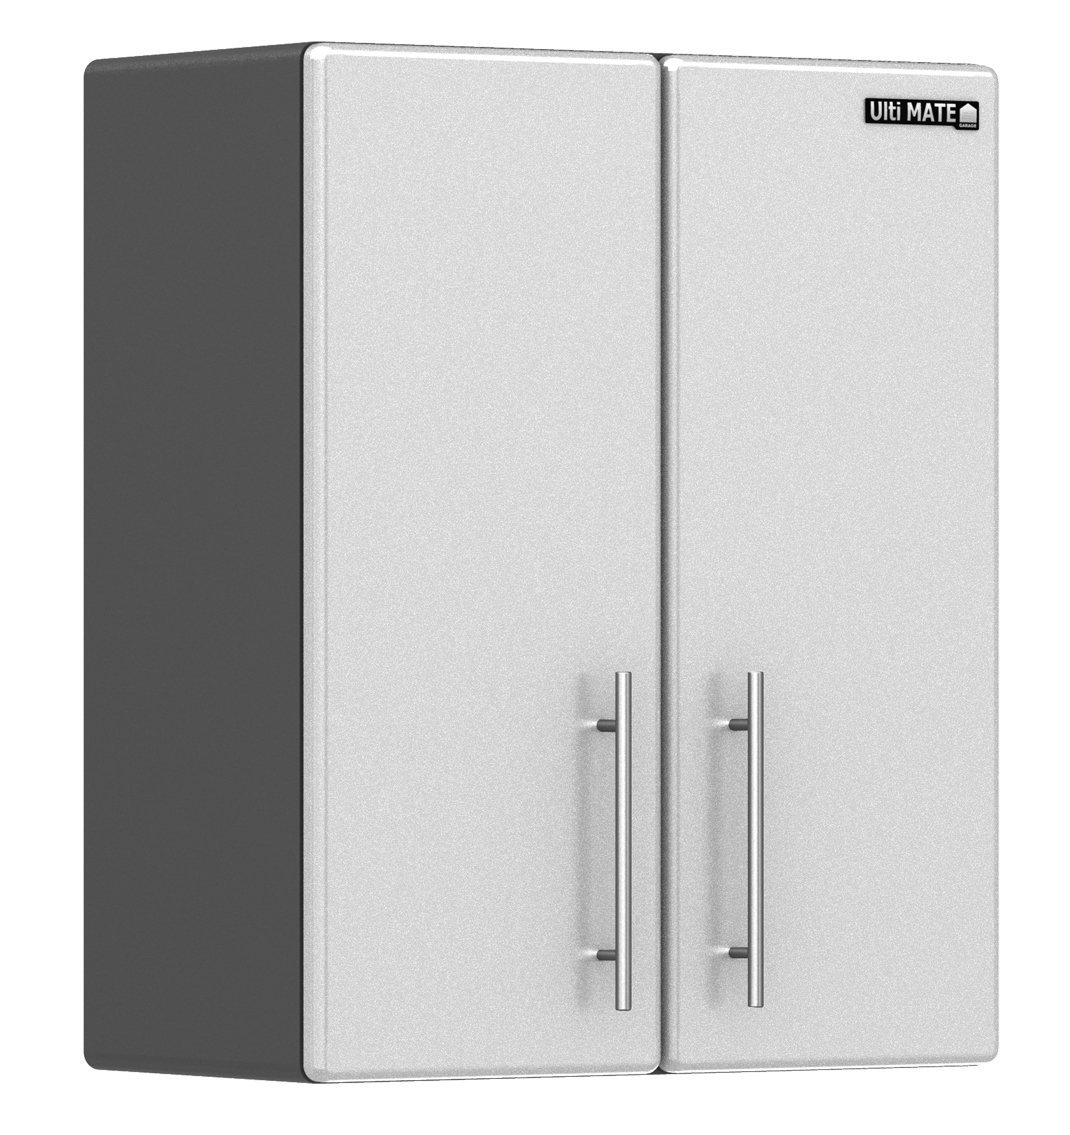 Ulti-MATE Storage 2-Door Wall Cabinet in Starfire Pearl - GA-09SW -Strong 3/4 MDF And PB Cabinet Construction With 300 lb load Rating - Adjustable 3/4 Shelf With 100 LB Load Rating - Fully Adjustable Recessed Euro Hinges - Brushed Chrome Handles - Ready to